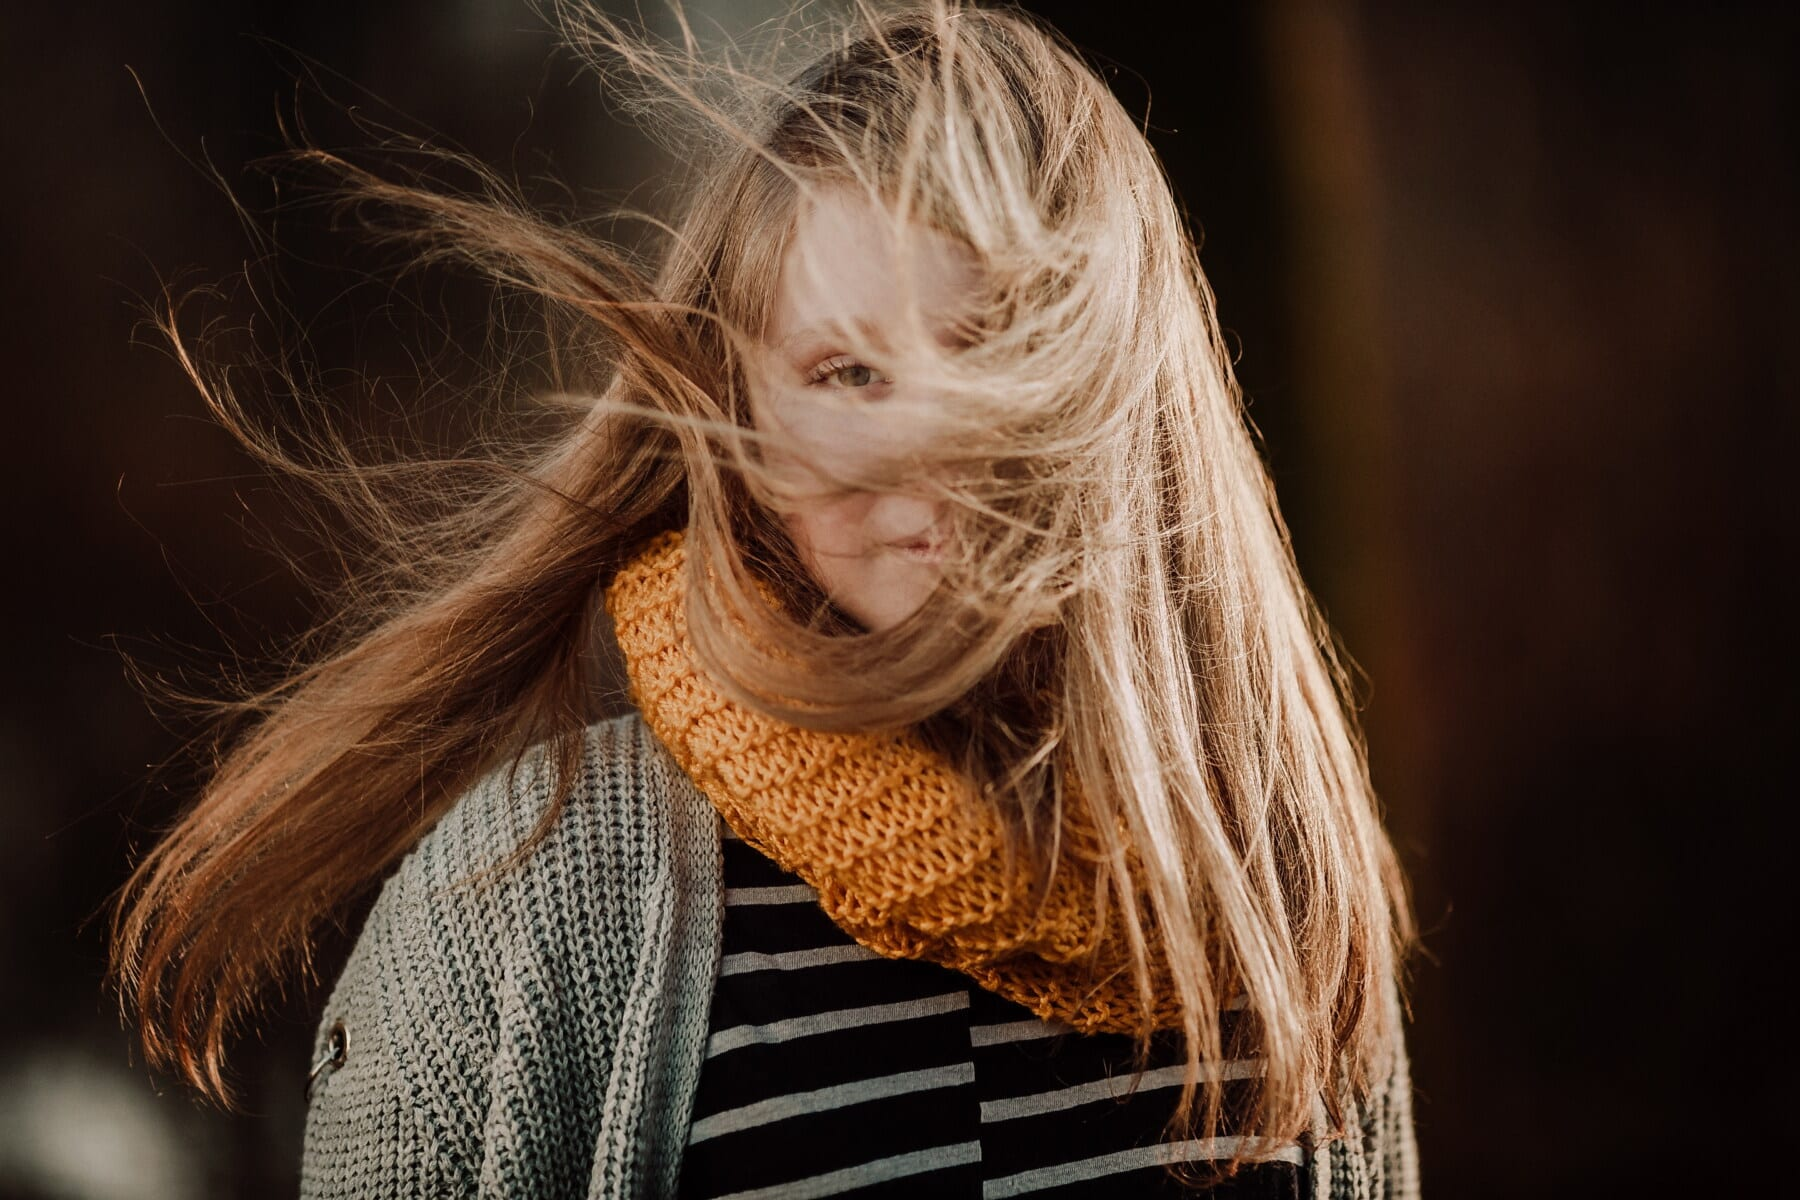 cold, teenager, hair, wind, weather, sweater, portrait, blonde hair, blonde, scarf